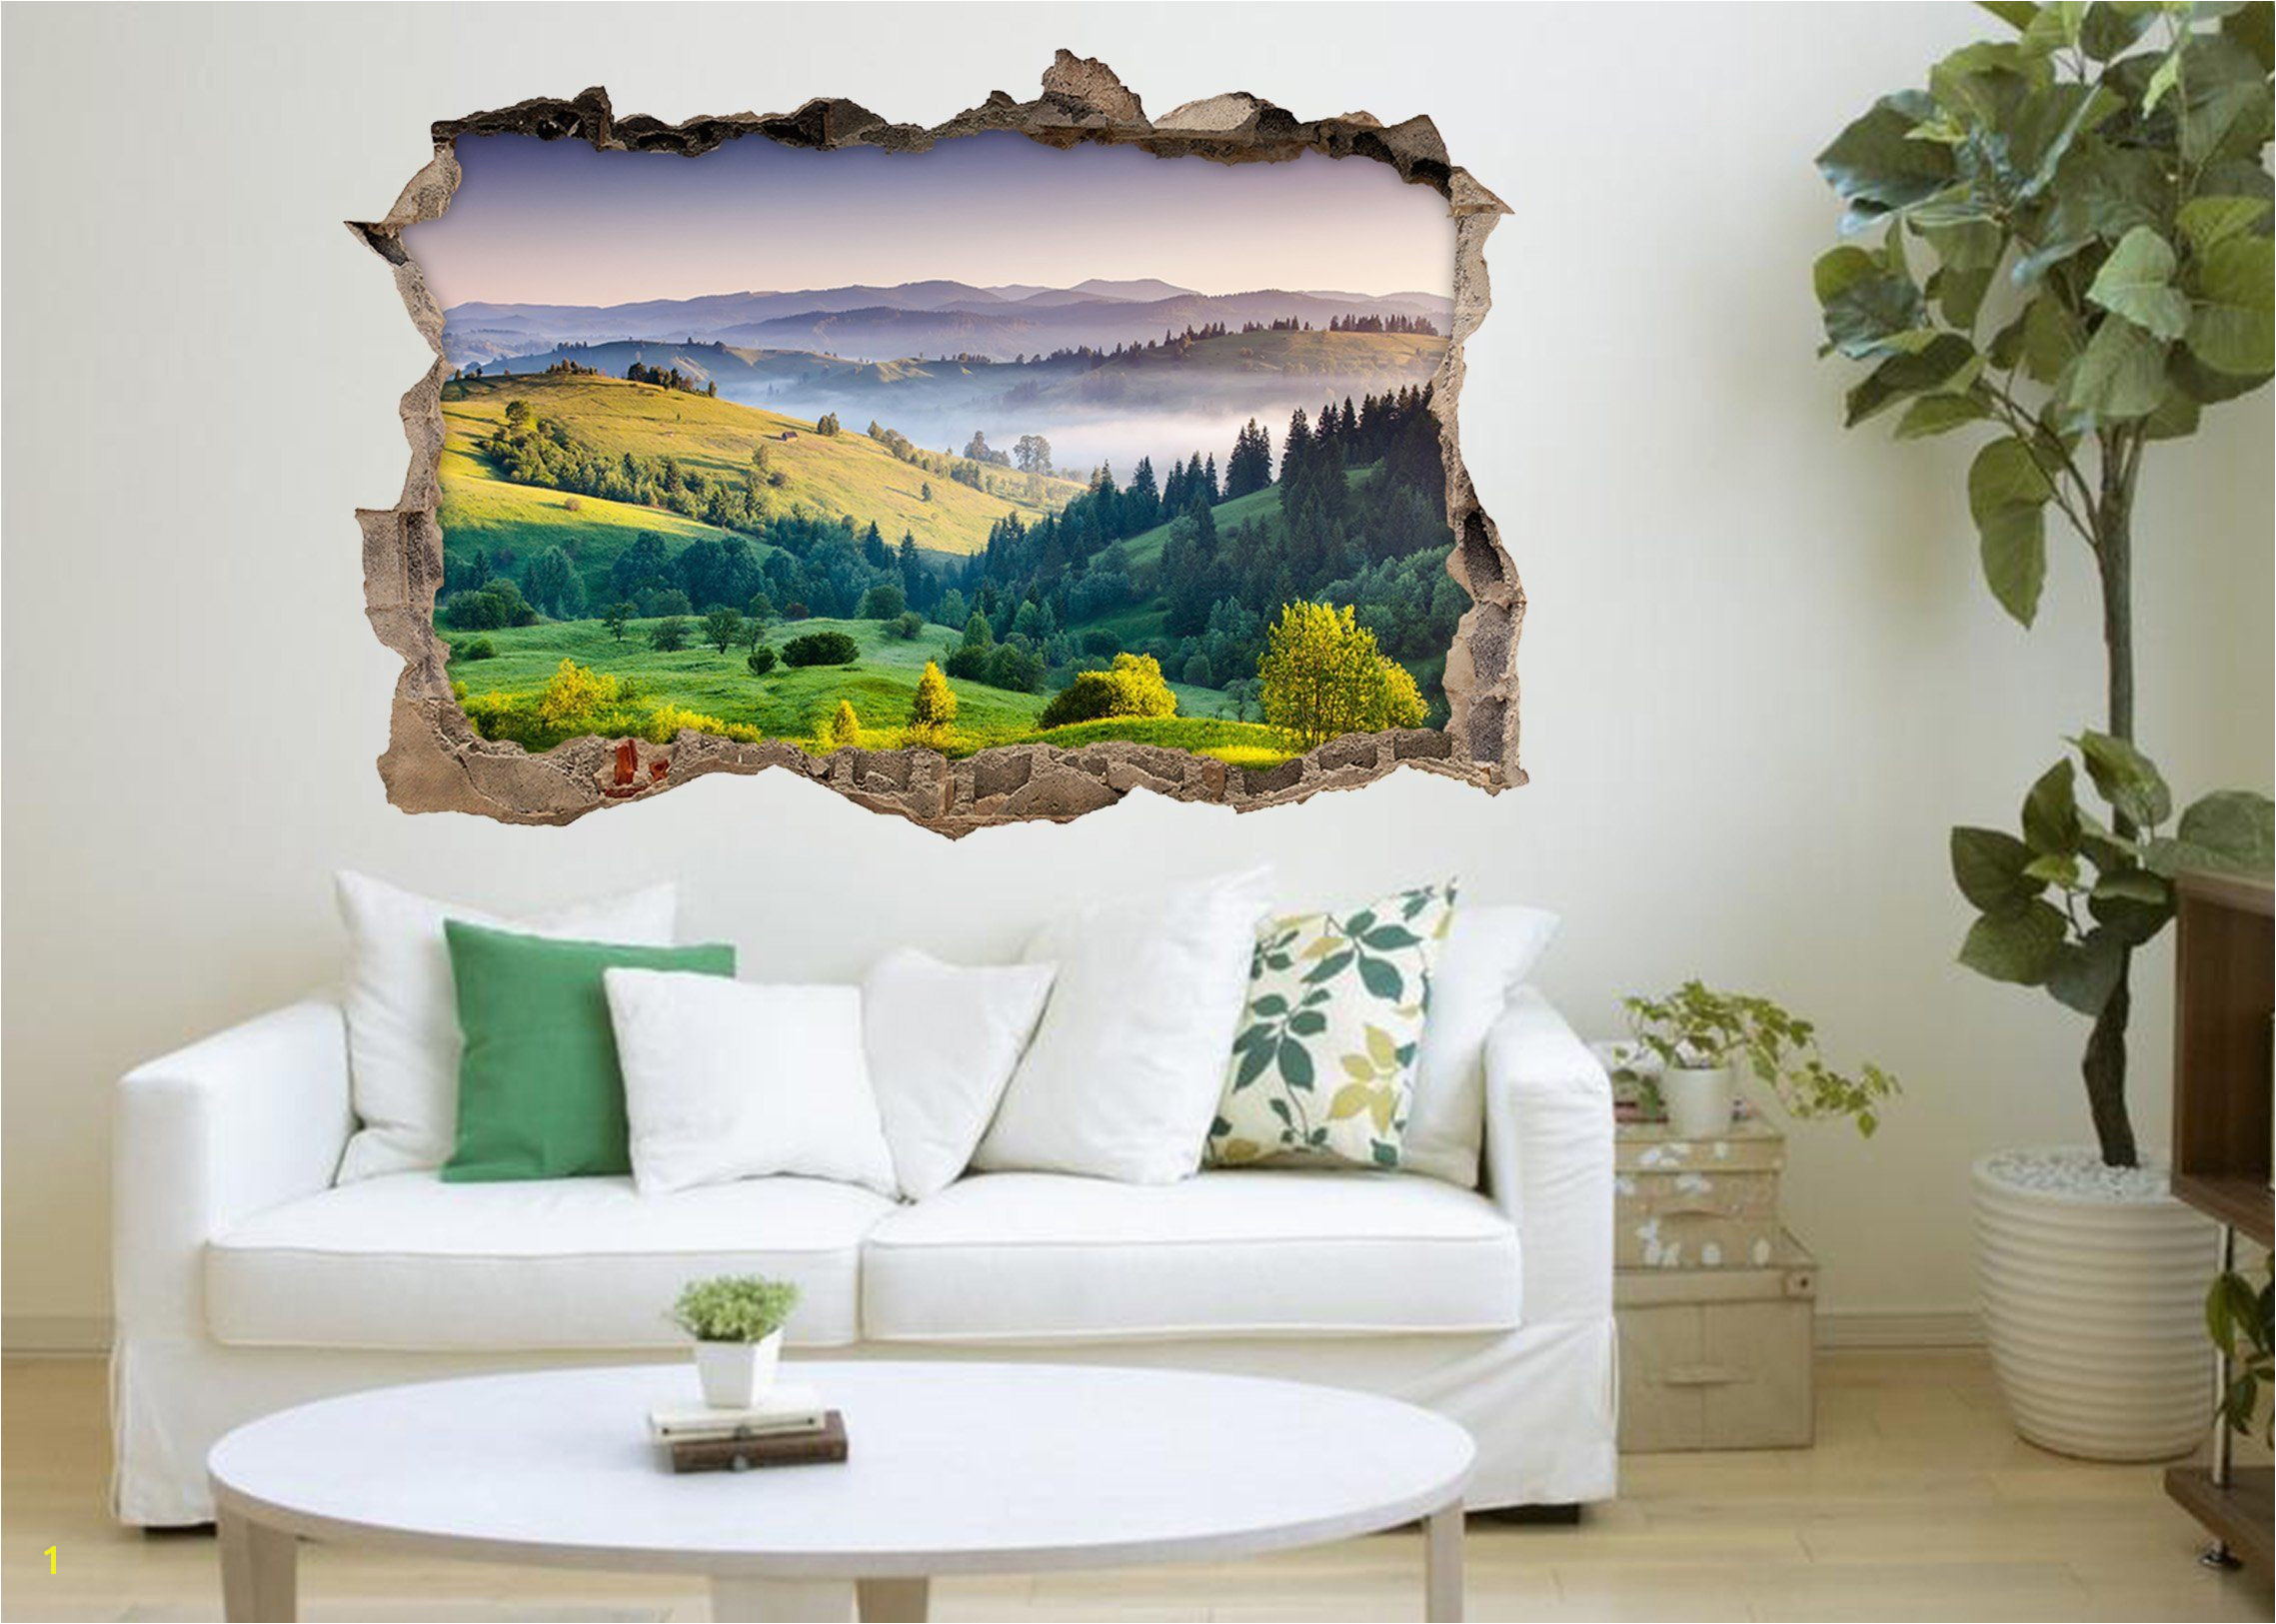 3D Mountains Landscape 112 Broken Wall Murals